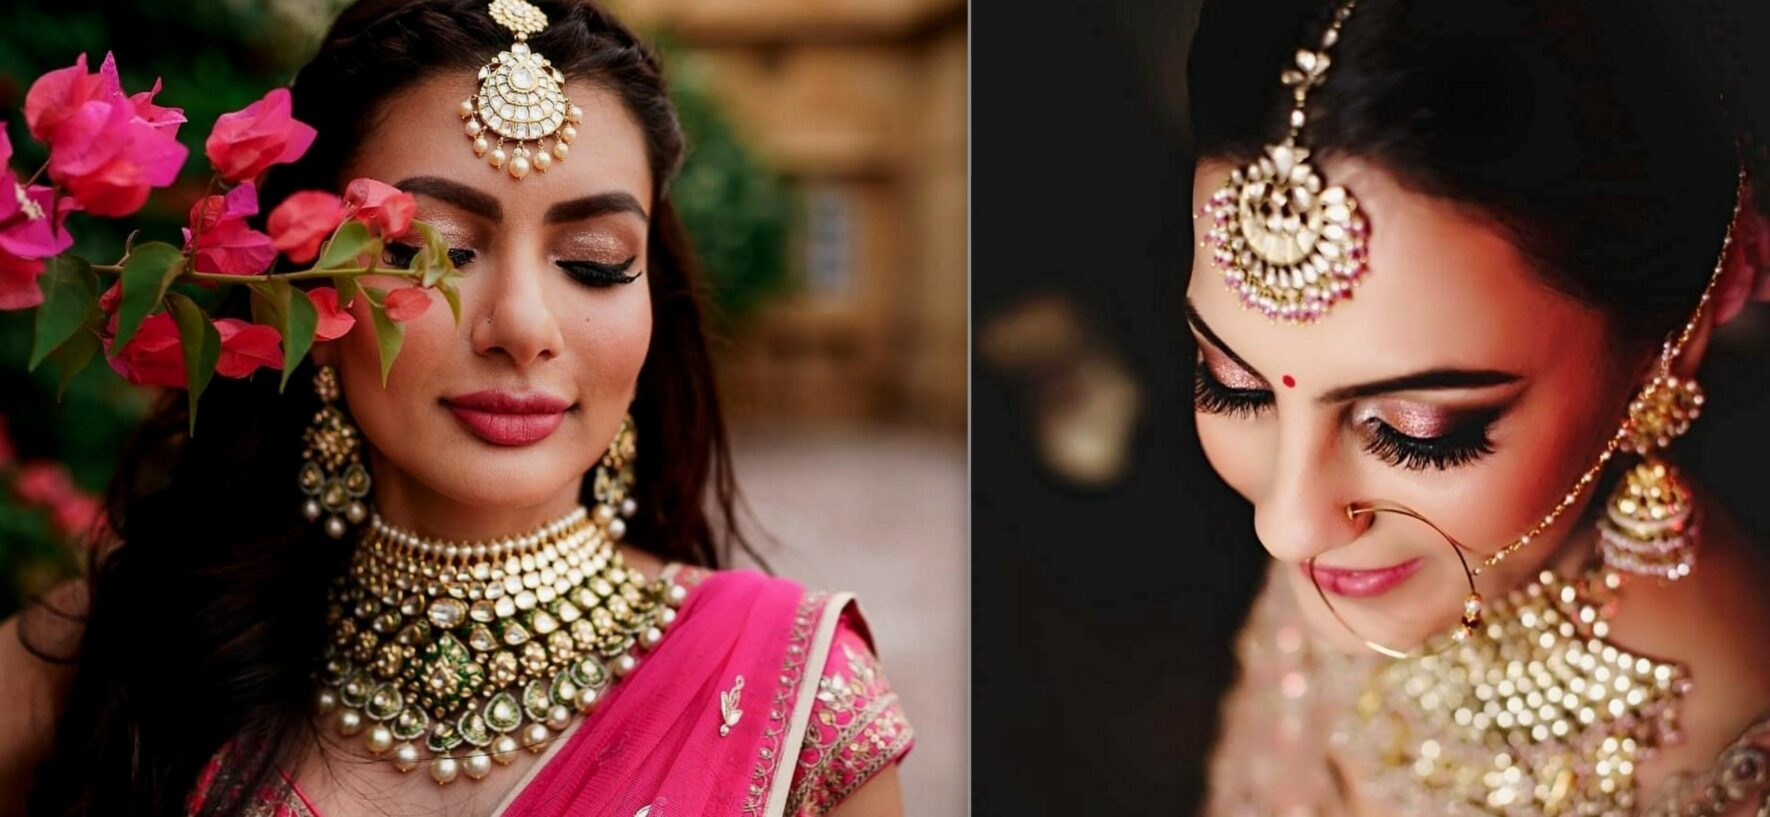 The Best Salon For Pre-Bridal Treatments and Wedding Makeup For Brides